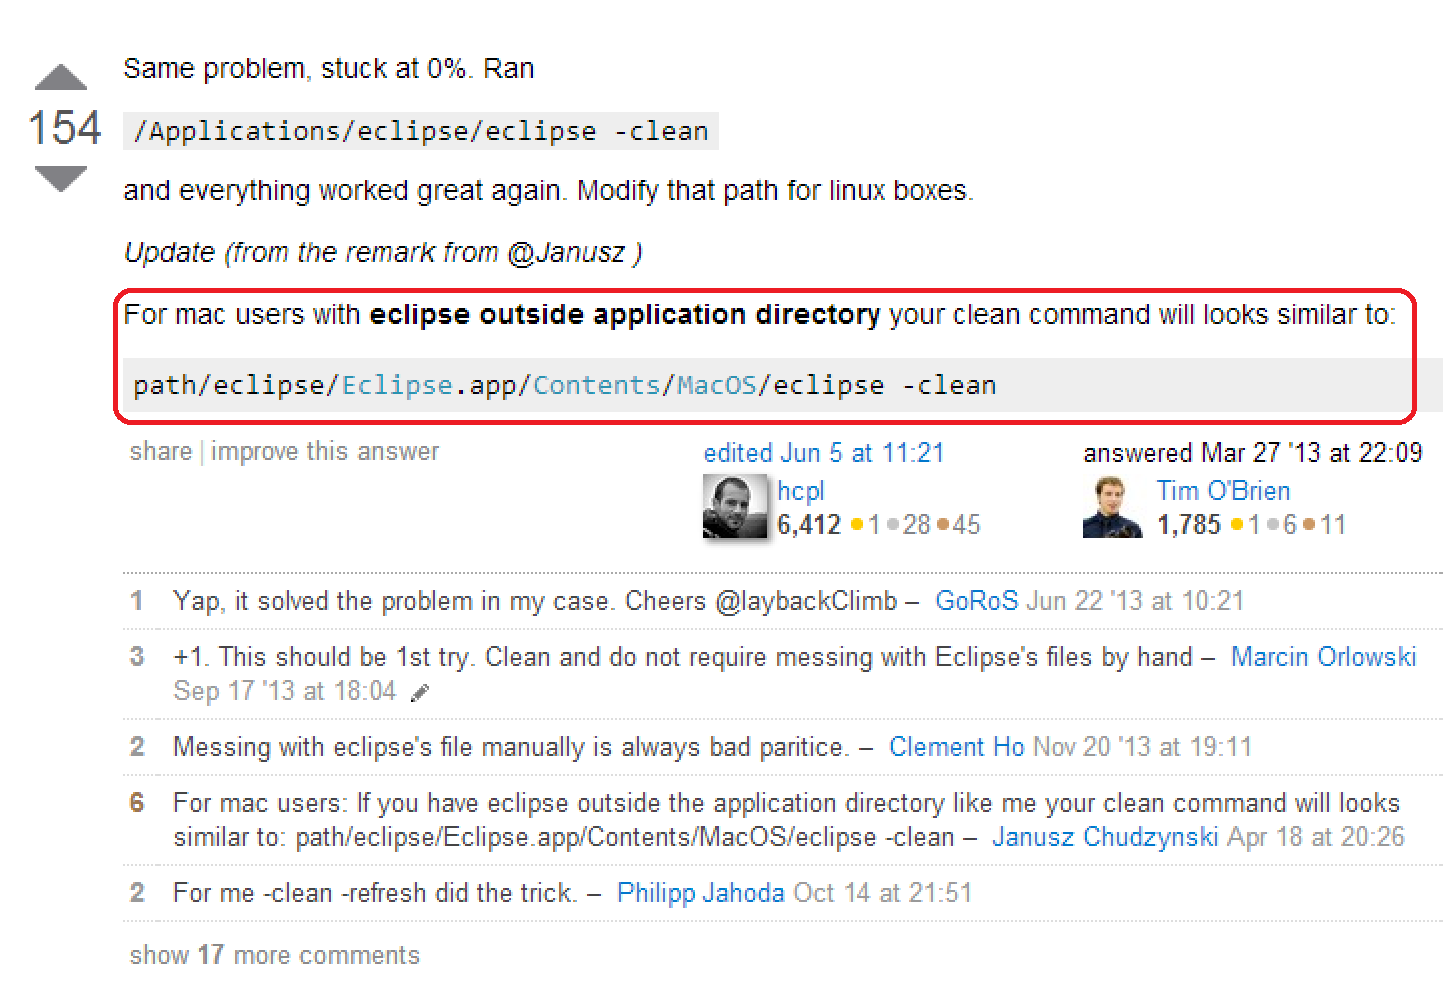 clean-eclipse-eclipse-app-contents-mac-os-eclipse-to-solve-the-problem-of-eclispe-open-eclipse-occurs-android-sdk-content-loader-0-percent-on-stack-overflow